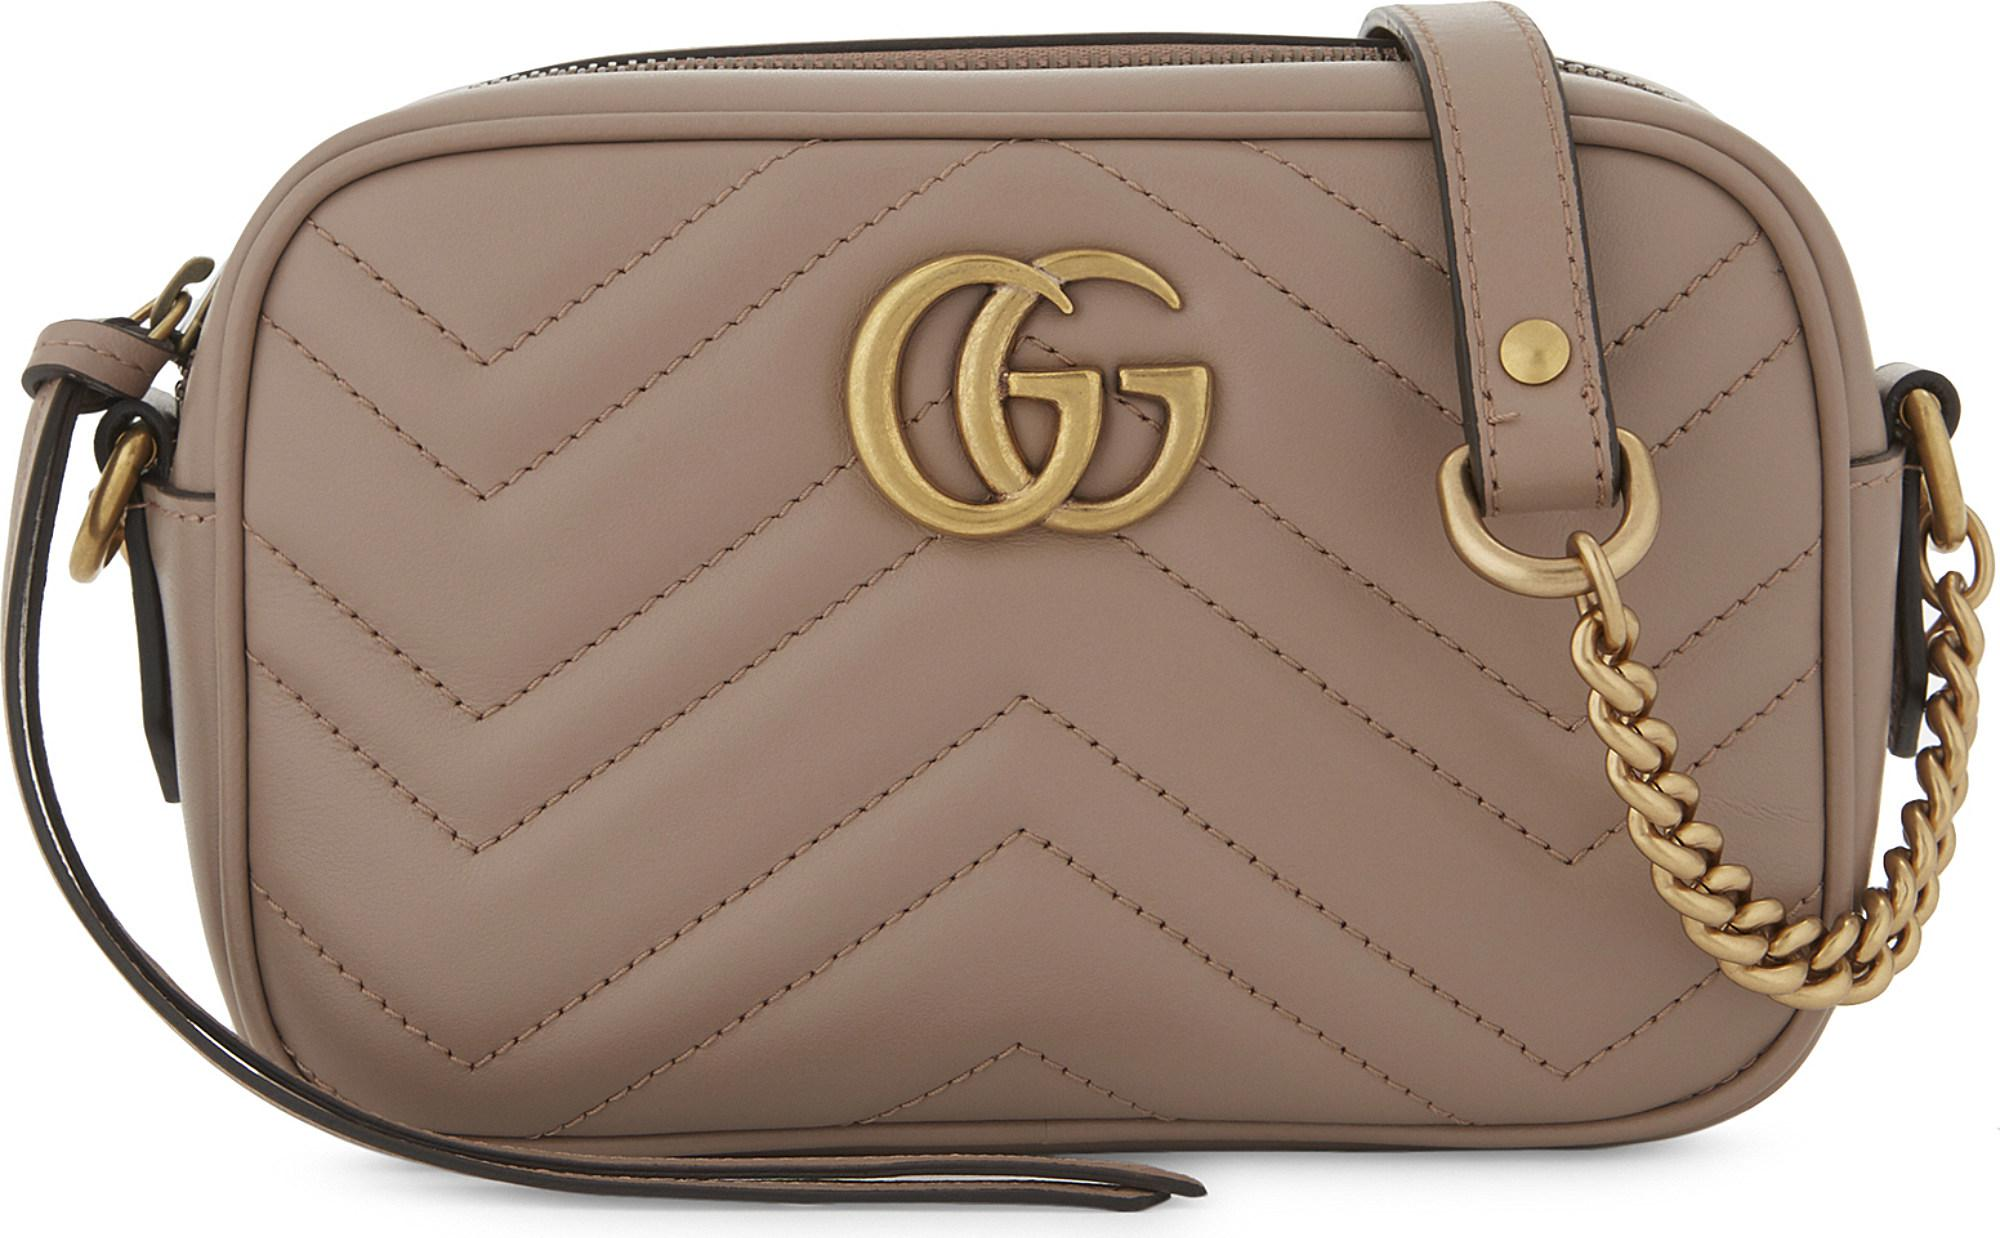 22523cd0ab7856 Gucci. Women's Marmont Leather Cross-body Bag